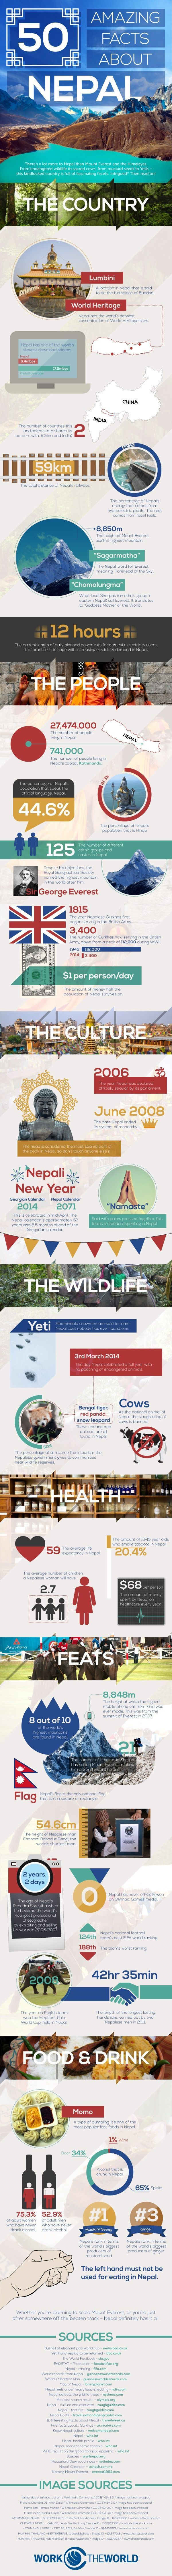 50 Amazing facts about Nepal - Infographic - Gorgeous Nepal